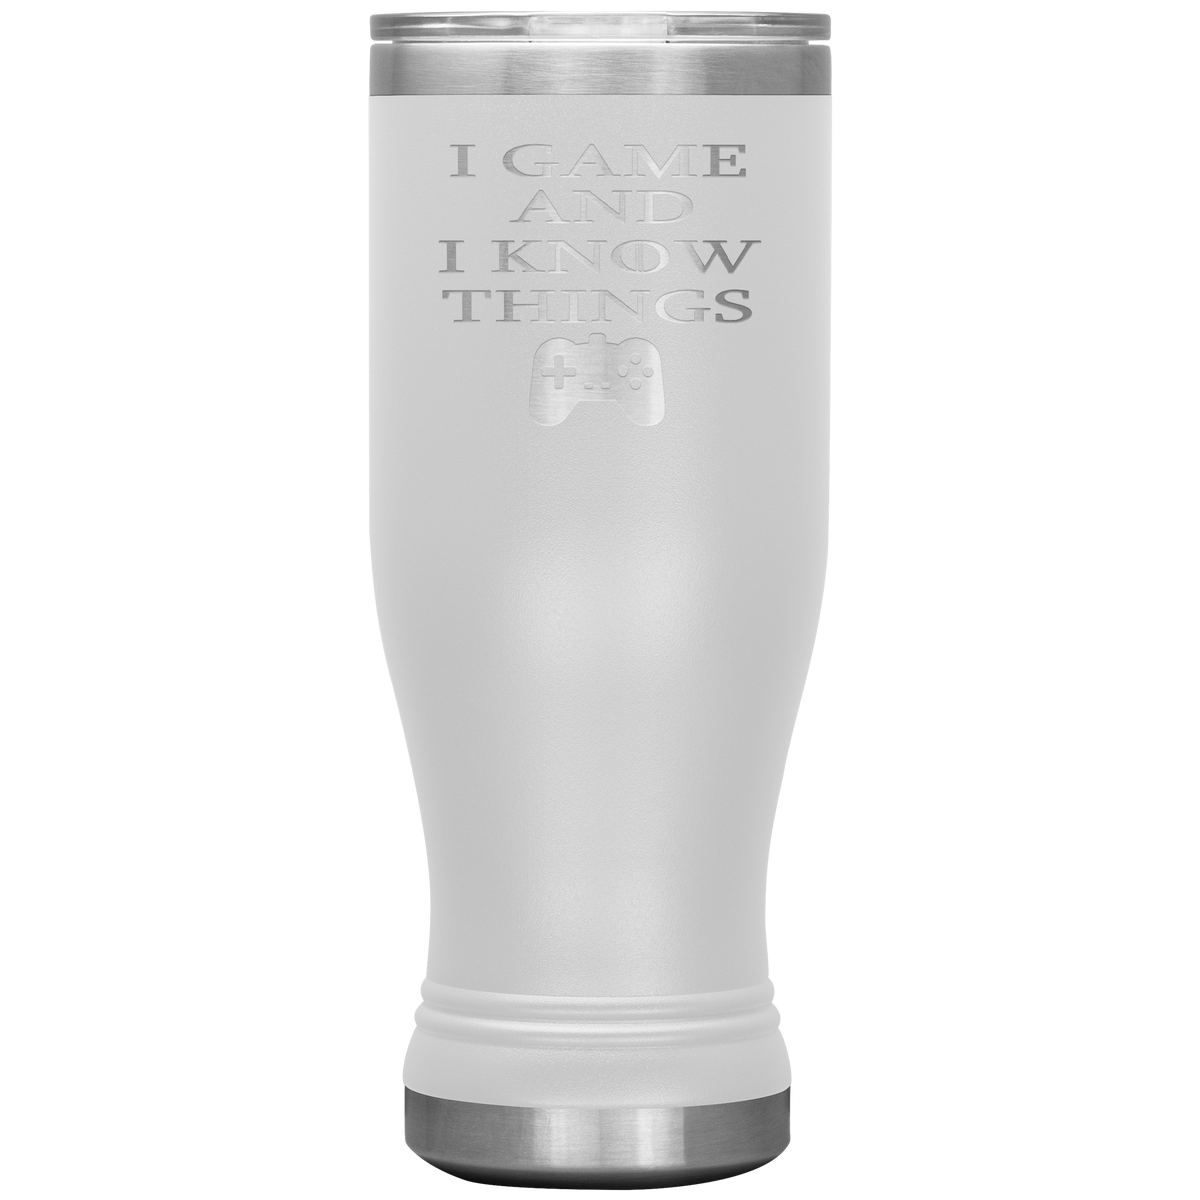 Gamer Gift I Game and I Know Things Pilsner Tumbler